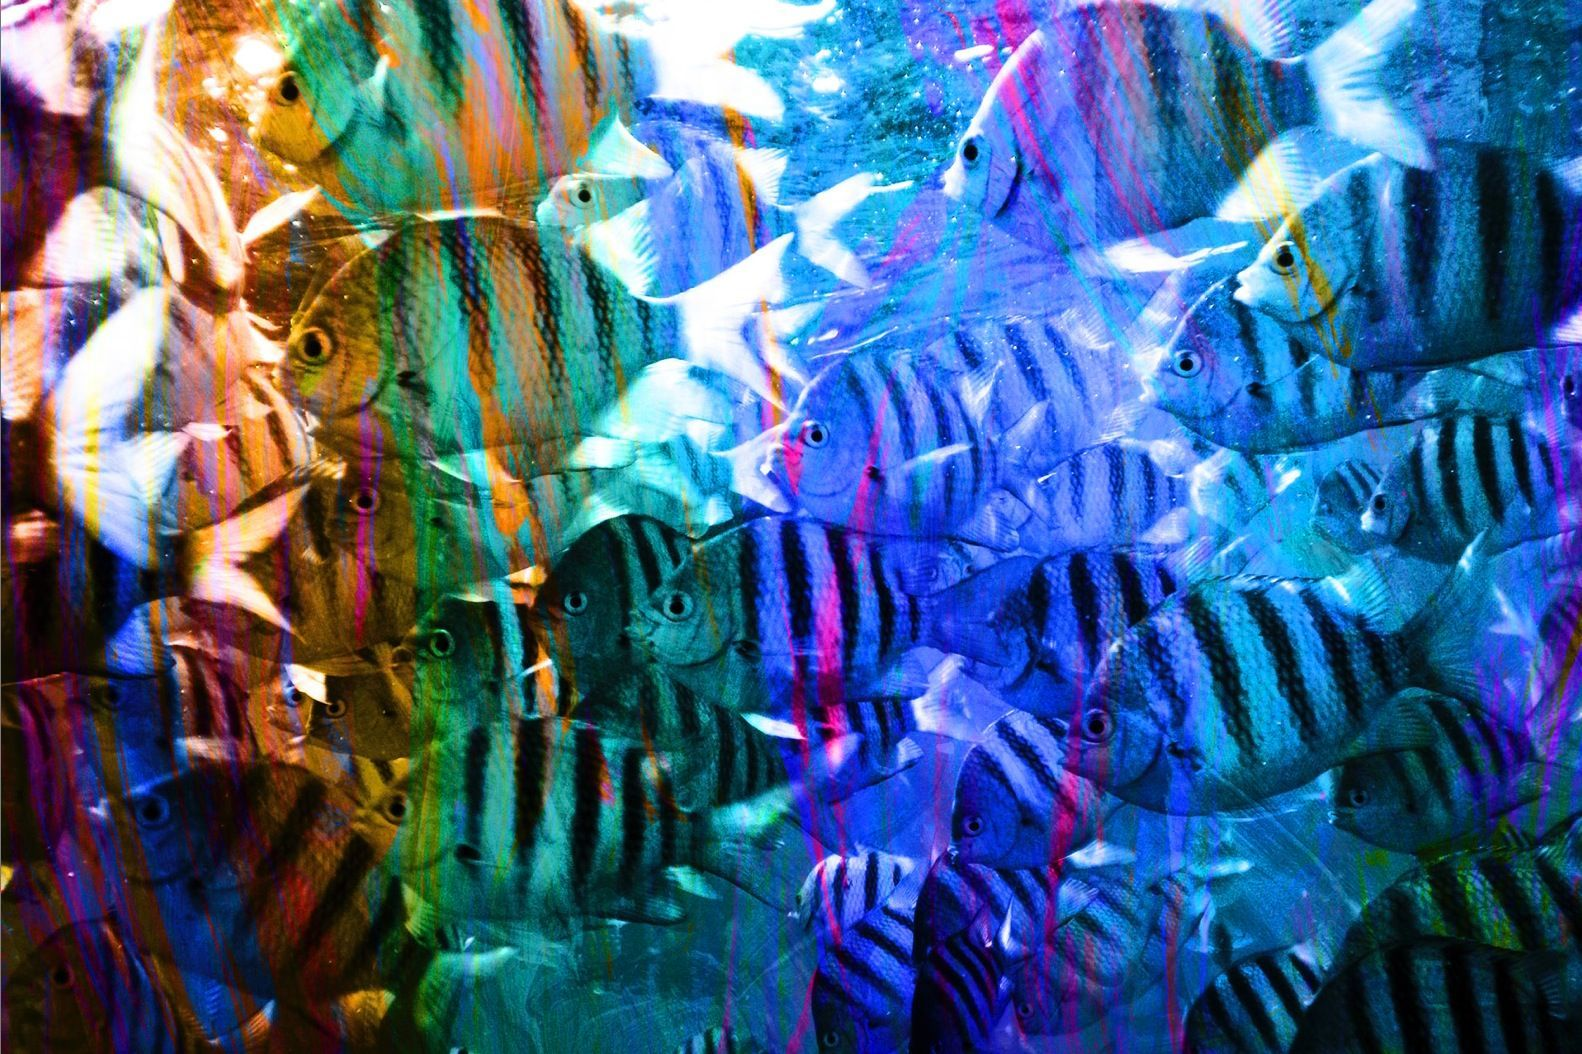 Striped Abstract with Fish in Purple